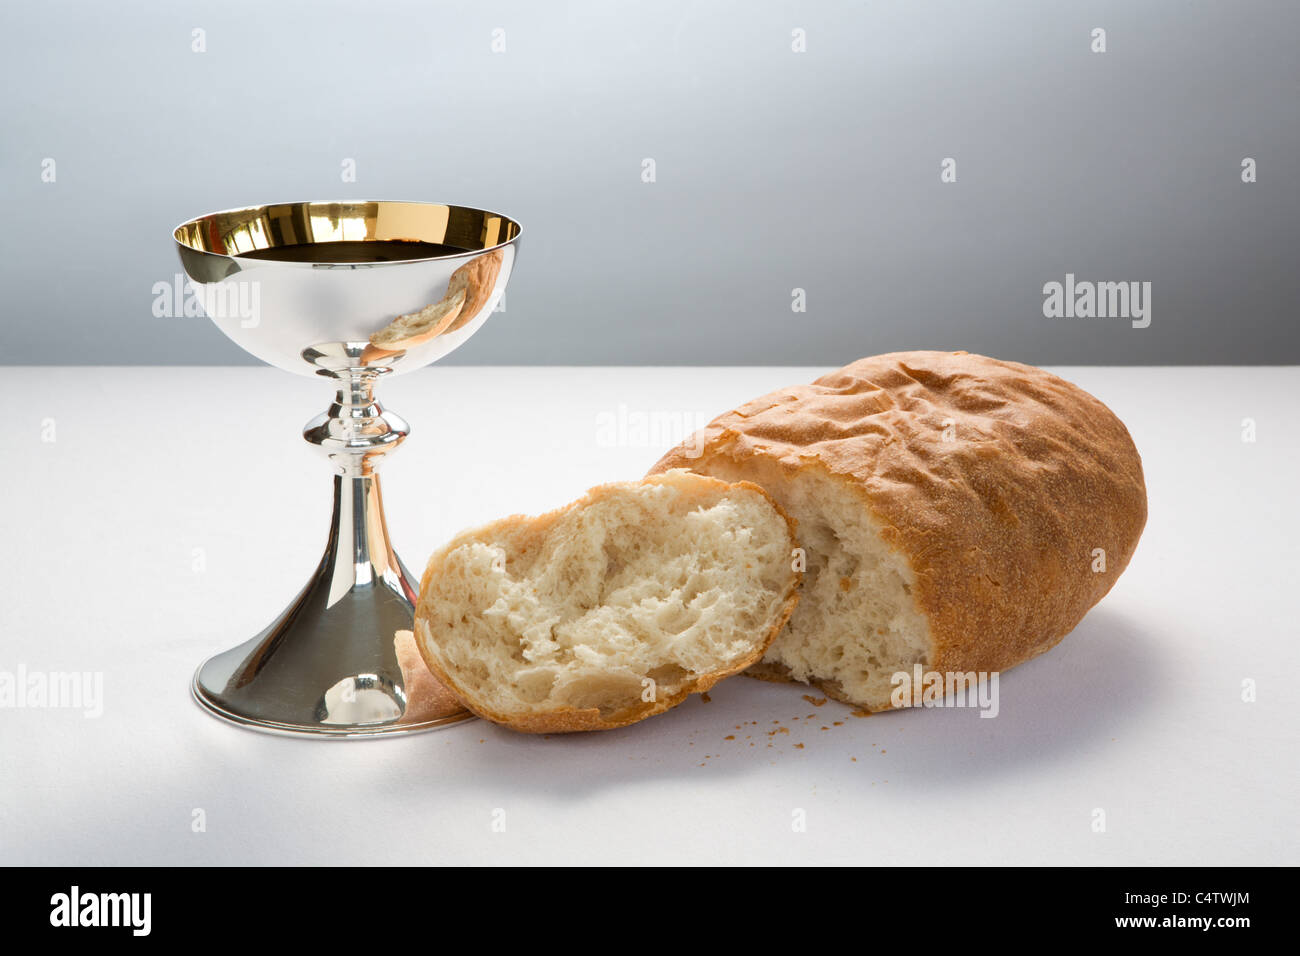 Holy Communion cup (chalice) with wine and broken loaf of